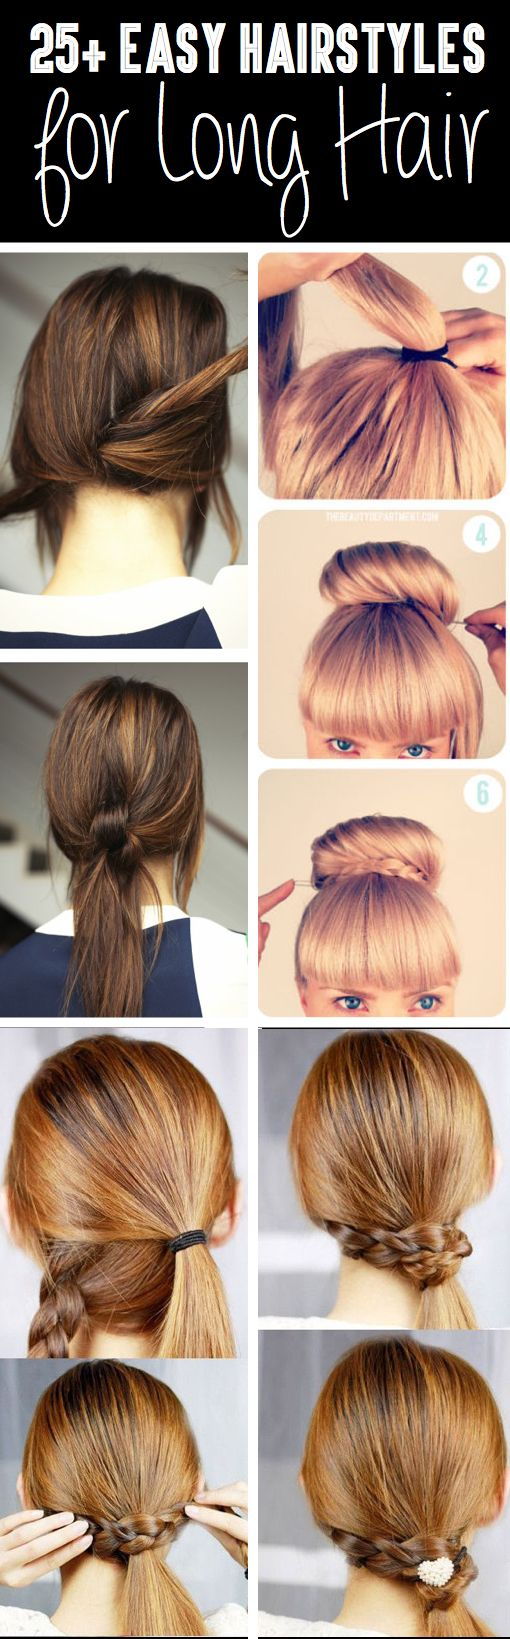 From Classy to Cute: 25 Easy Hairstyles for Long Hair>>>>For when my hair grows back out:) - More on http://ideasforbeautypic.com